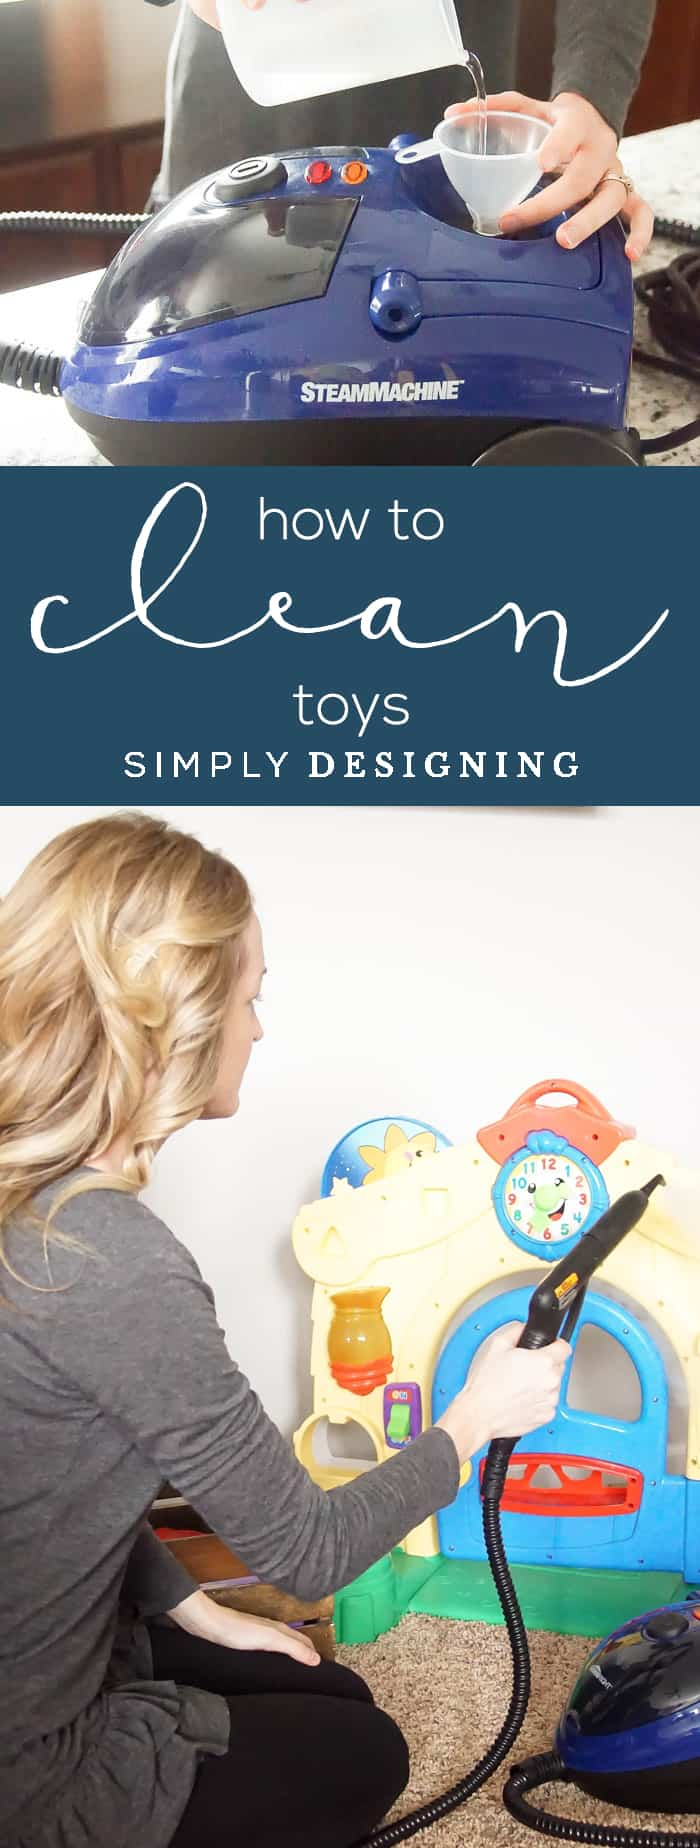 How to Clean Toys - The Best Way to Clean Baby Toys - How do you sanitize toys - How to clean baby toys that cant be washed